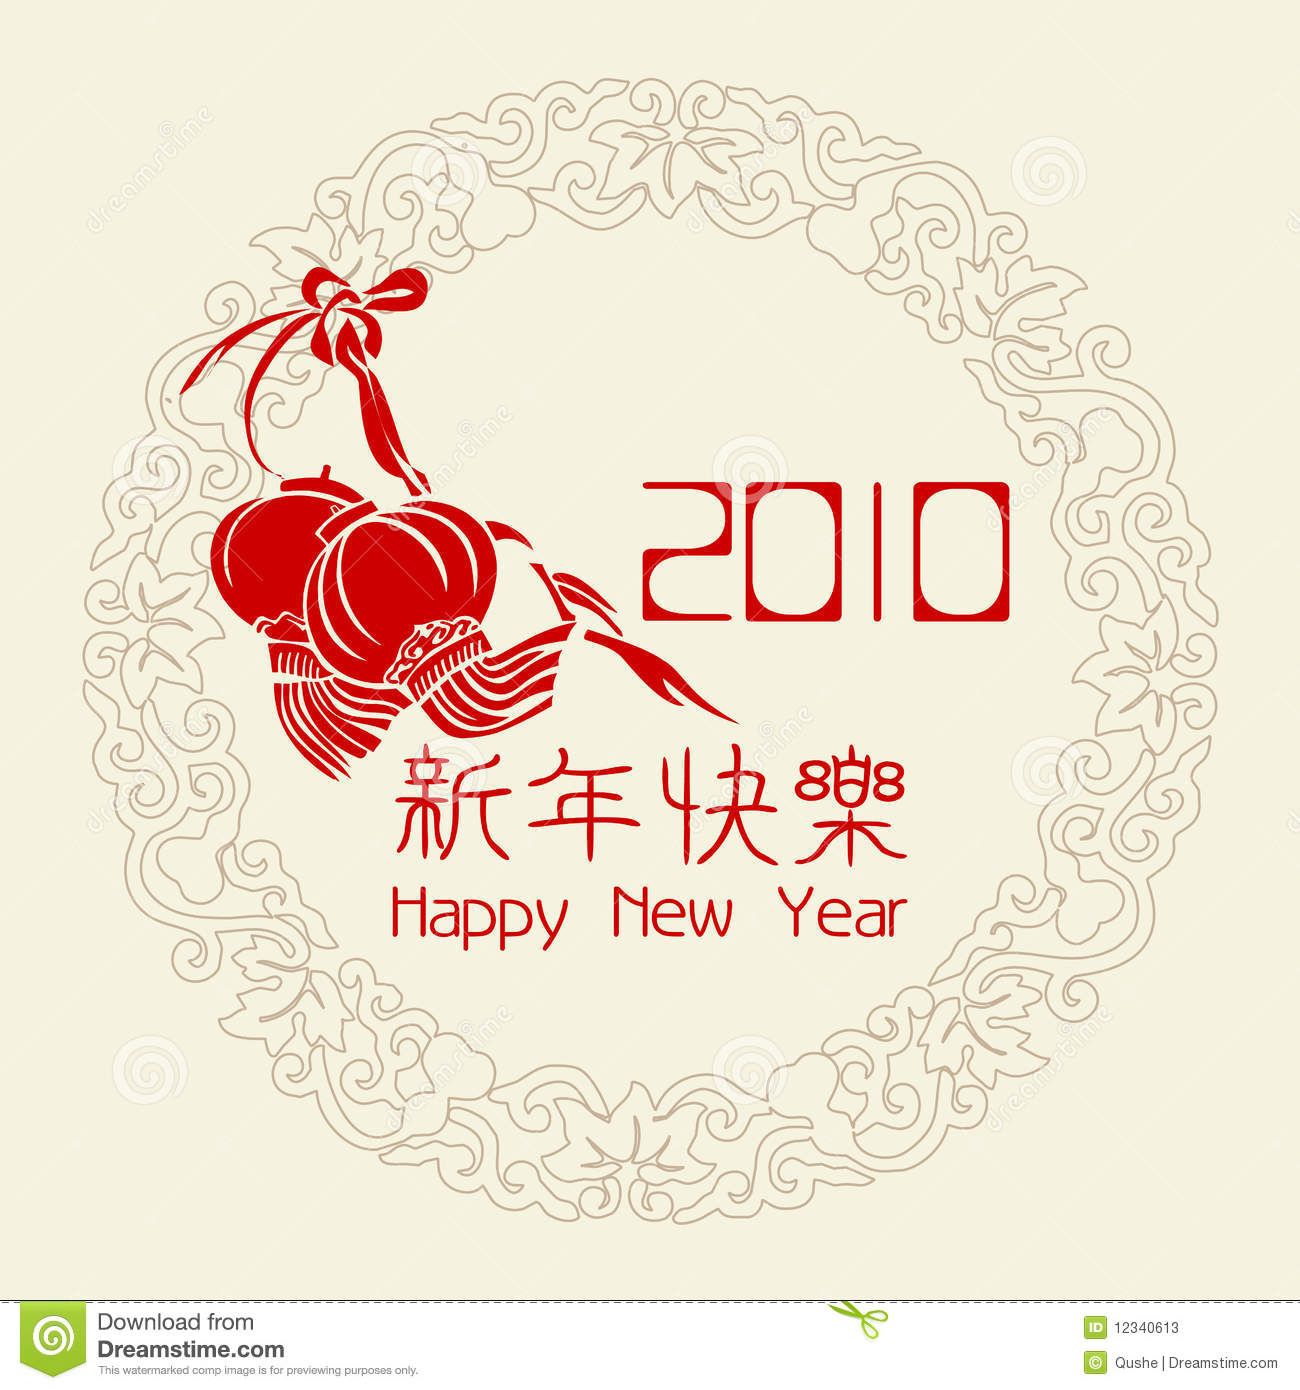 2010 Chinese New Year Greeting Card Stock Vector ...